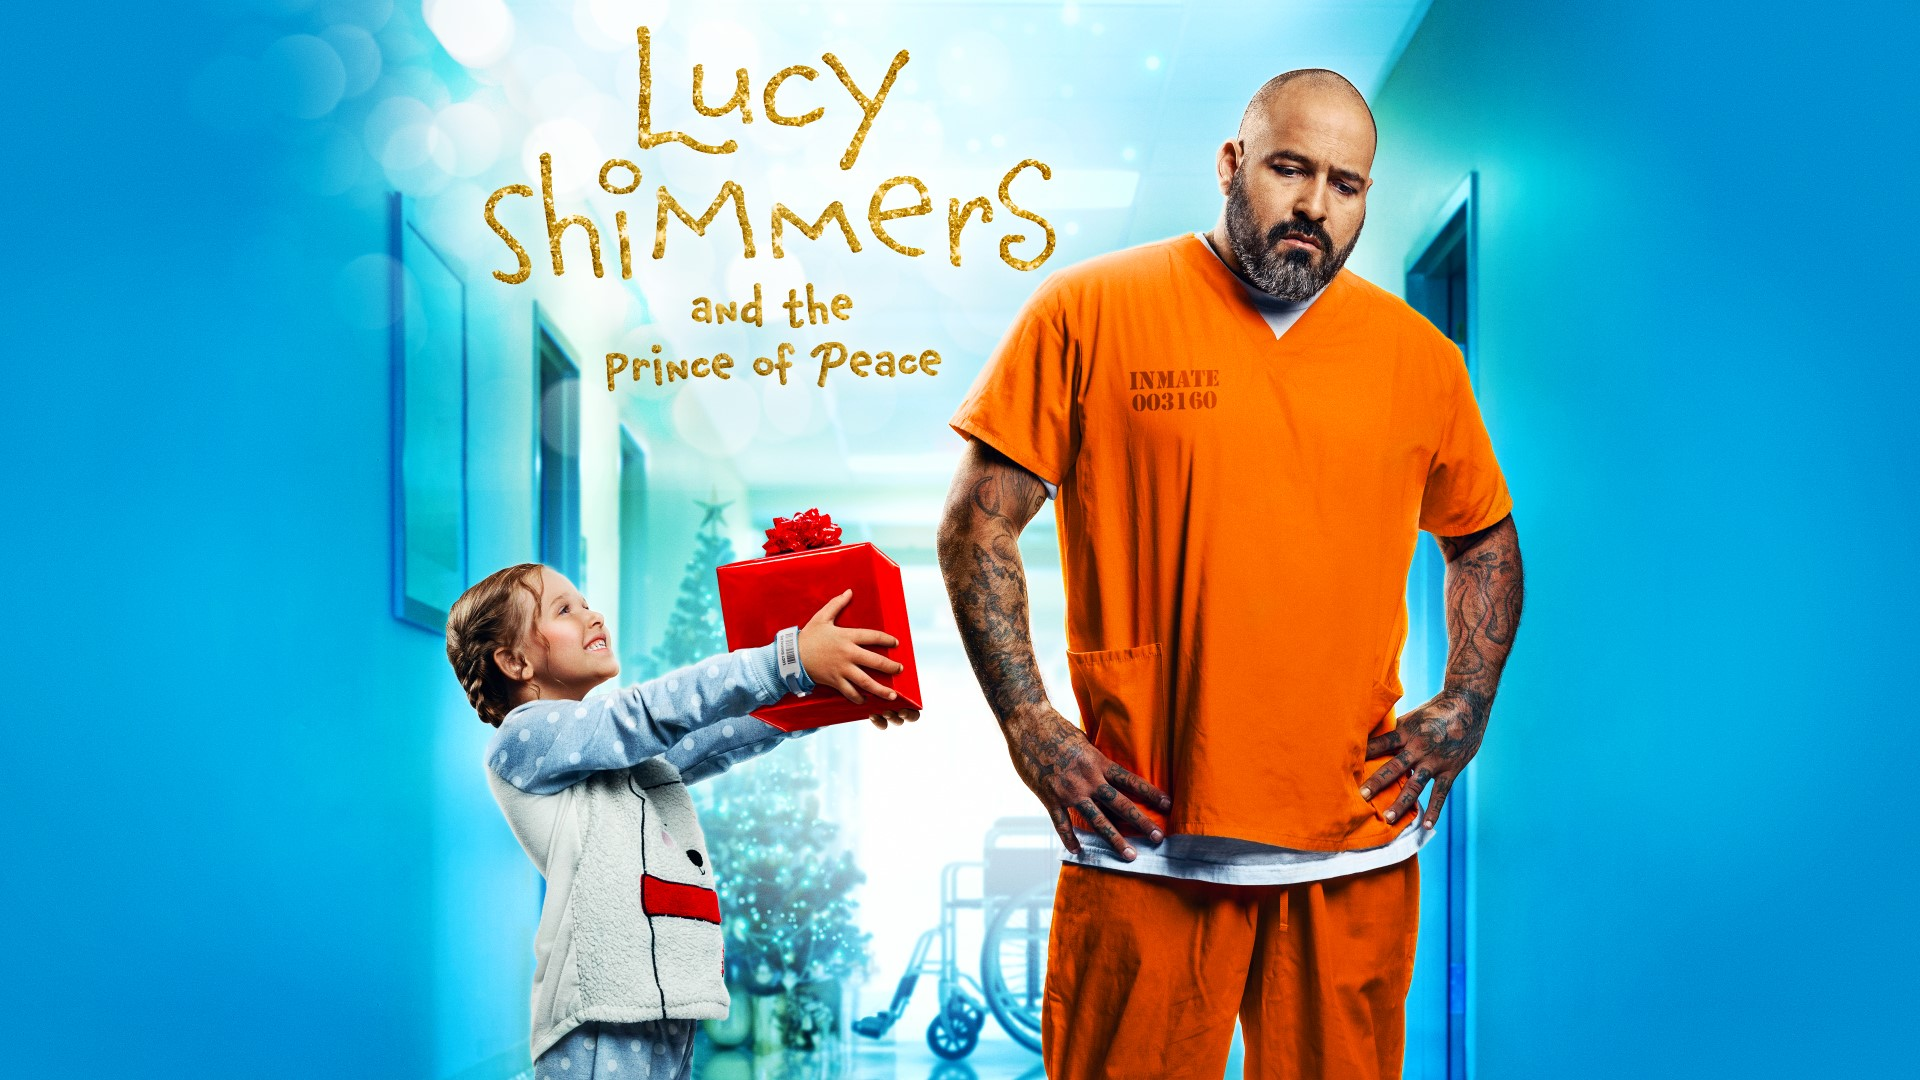 Lucy Shimmers and the Prince of Peace